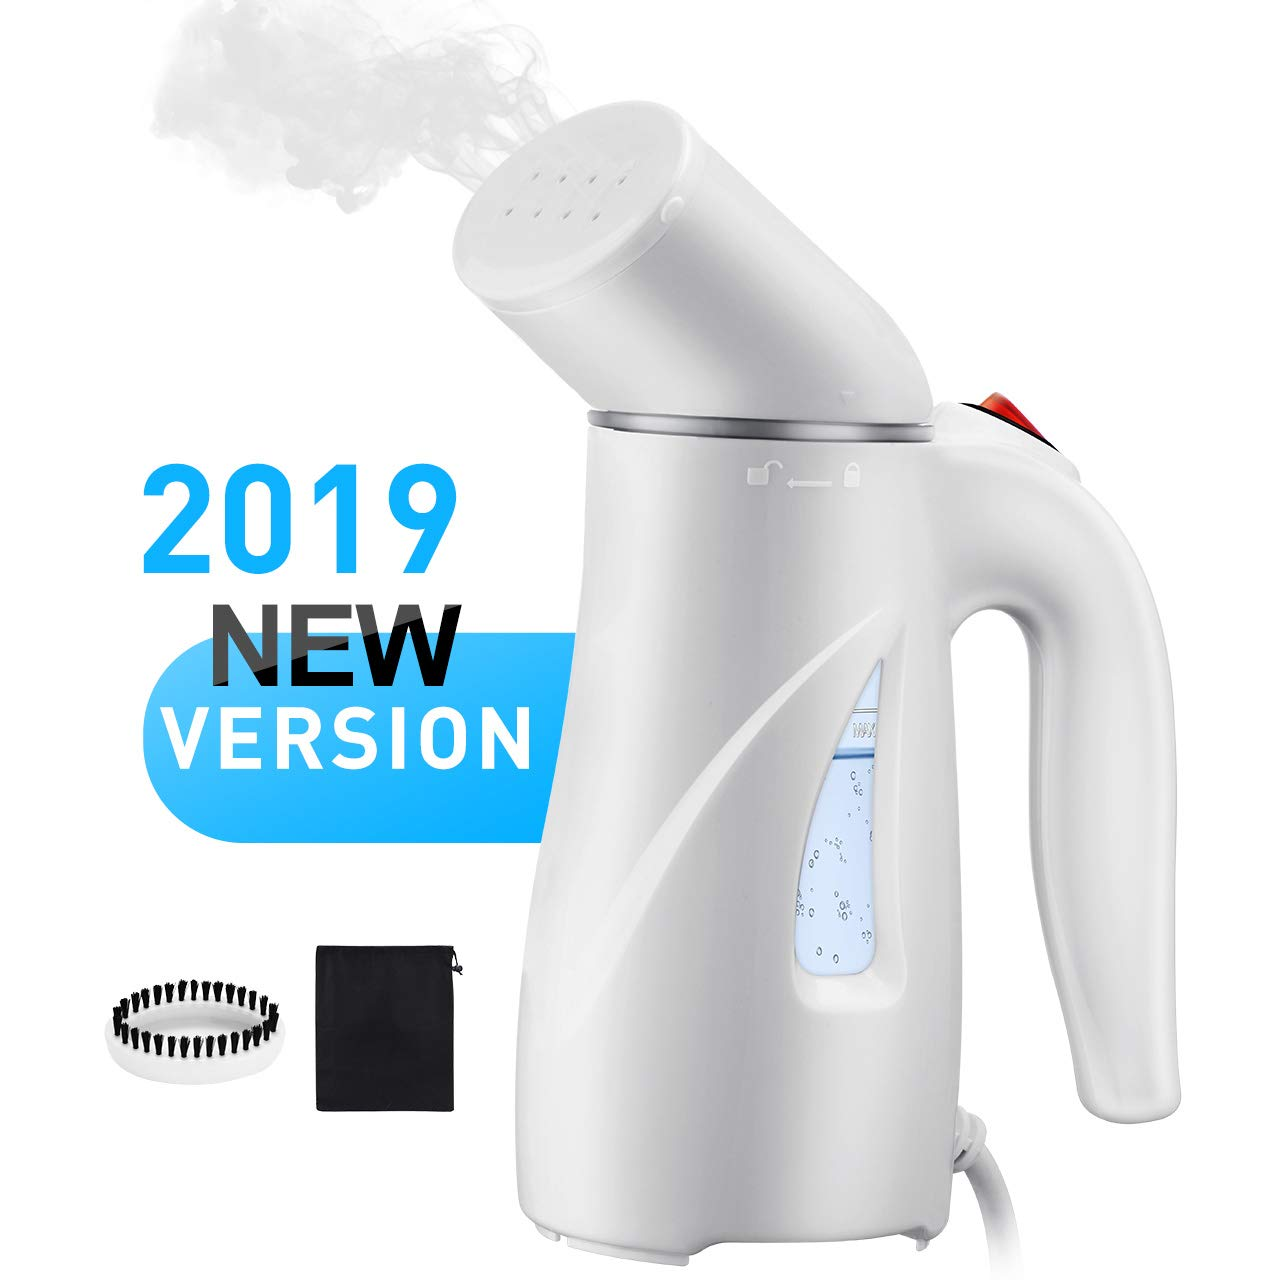 PICTEK Steamers for Clothes, Fast Heat-up Handheld Garment Steamer, Compact Portable Wrinkle Remover Fabric Steamer with Automatic Shut-off, Pouch for Travel, Home, Office, 110ml YTGEHM223AWUS